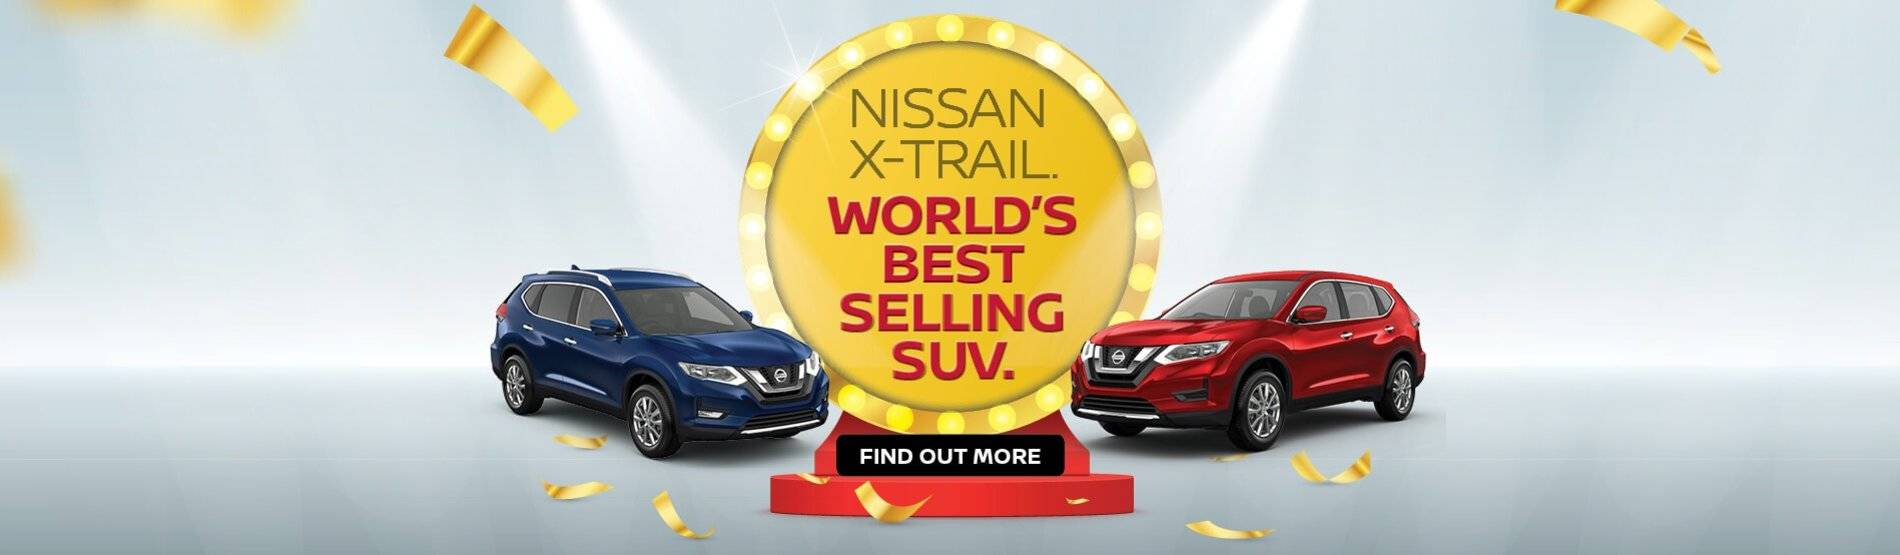 Nissan X-TRAIL, World's best selling SUV